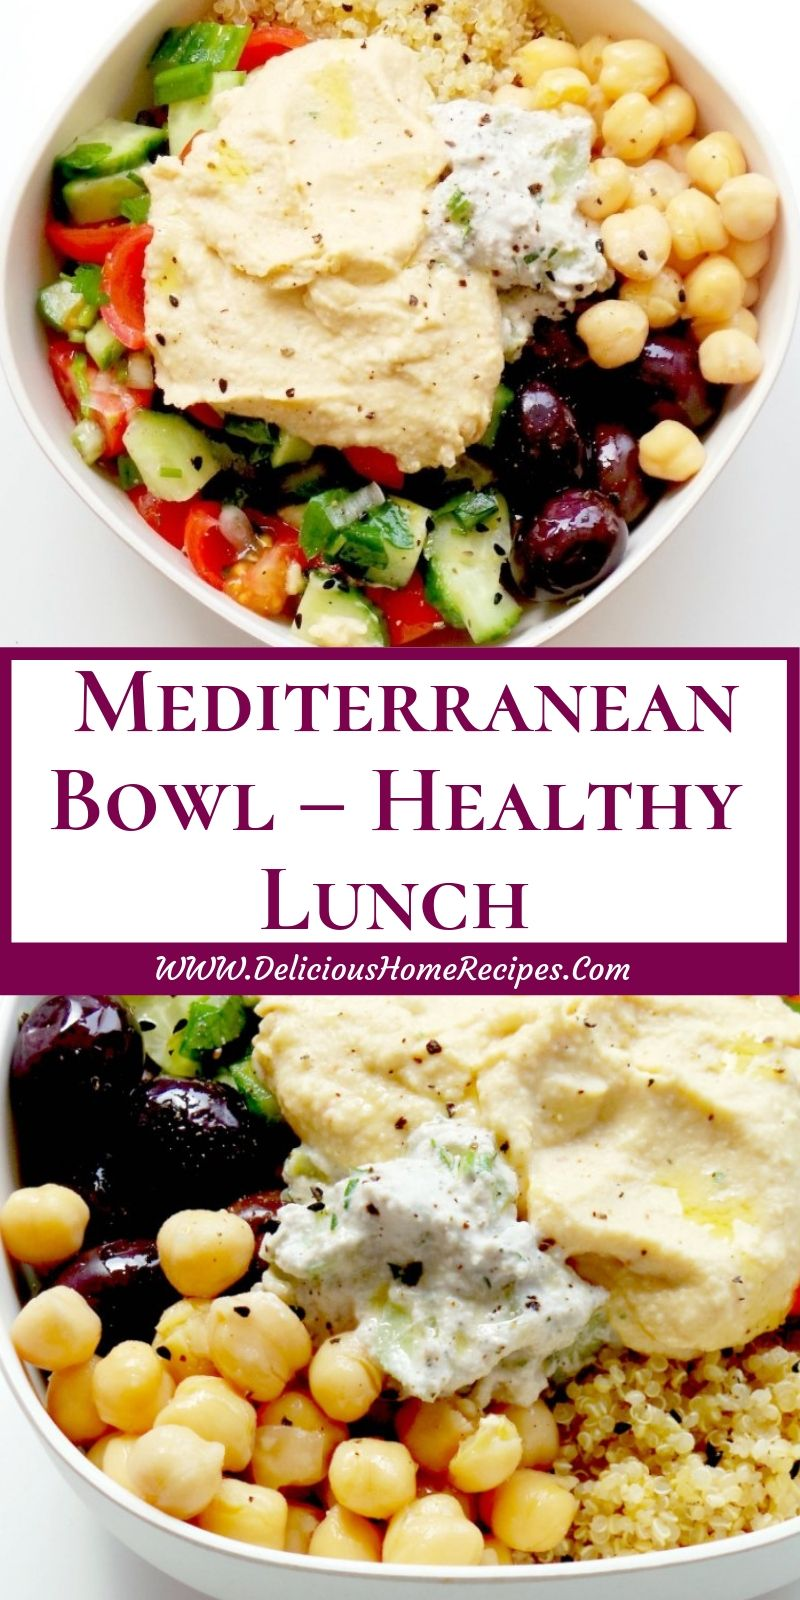 Mediterranean Bowl – Healthy Lunch images